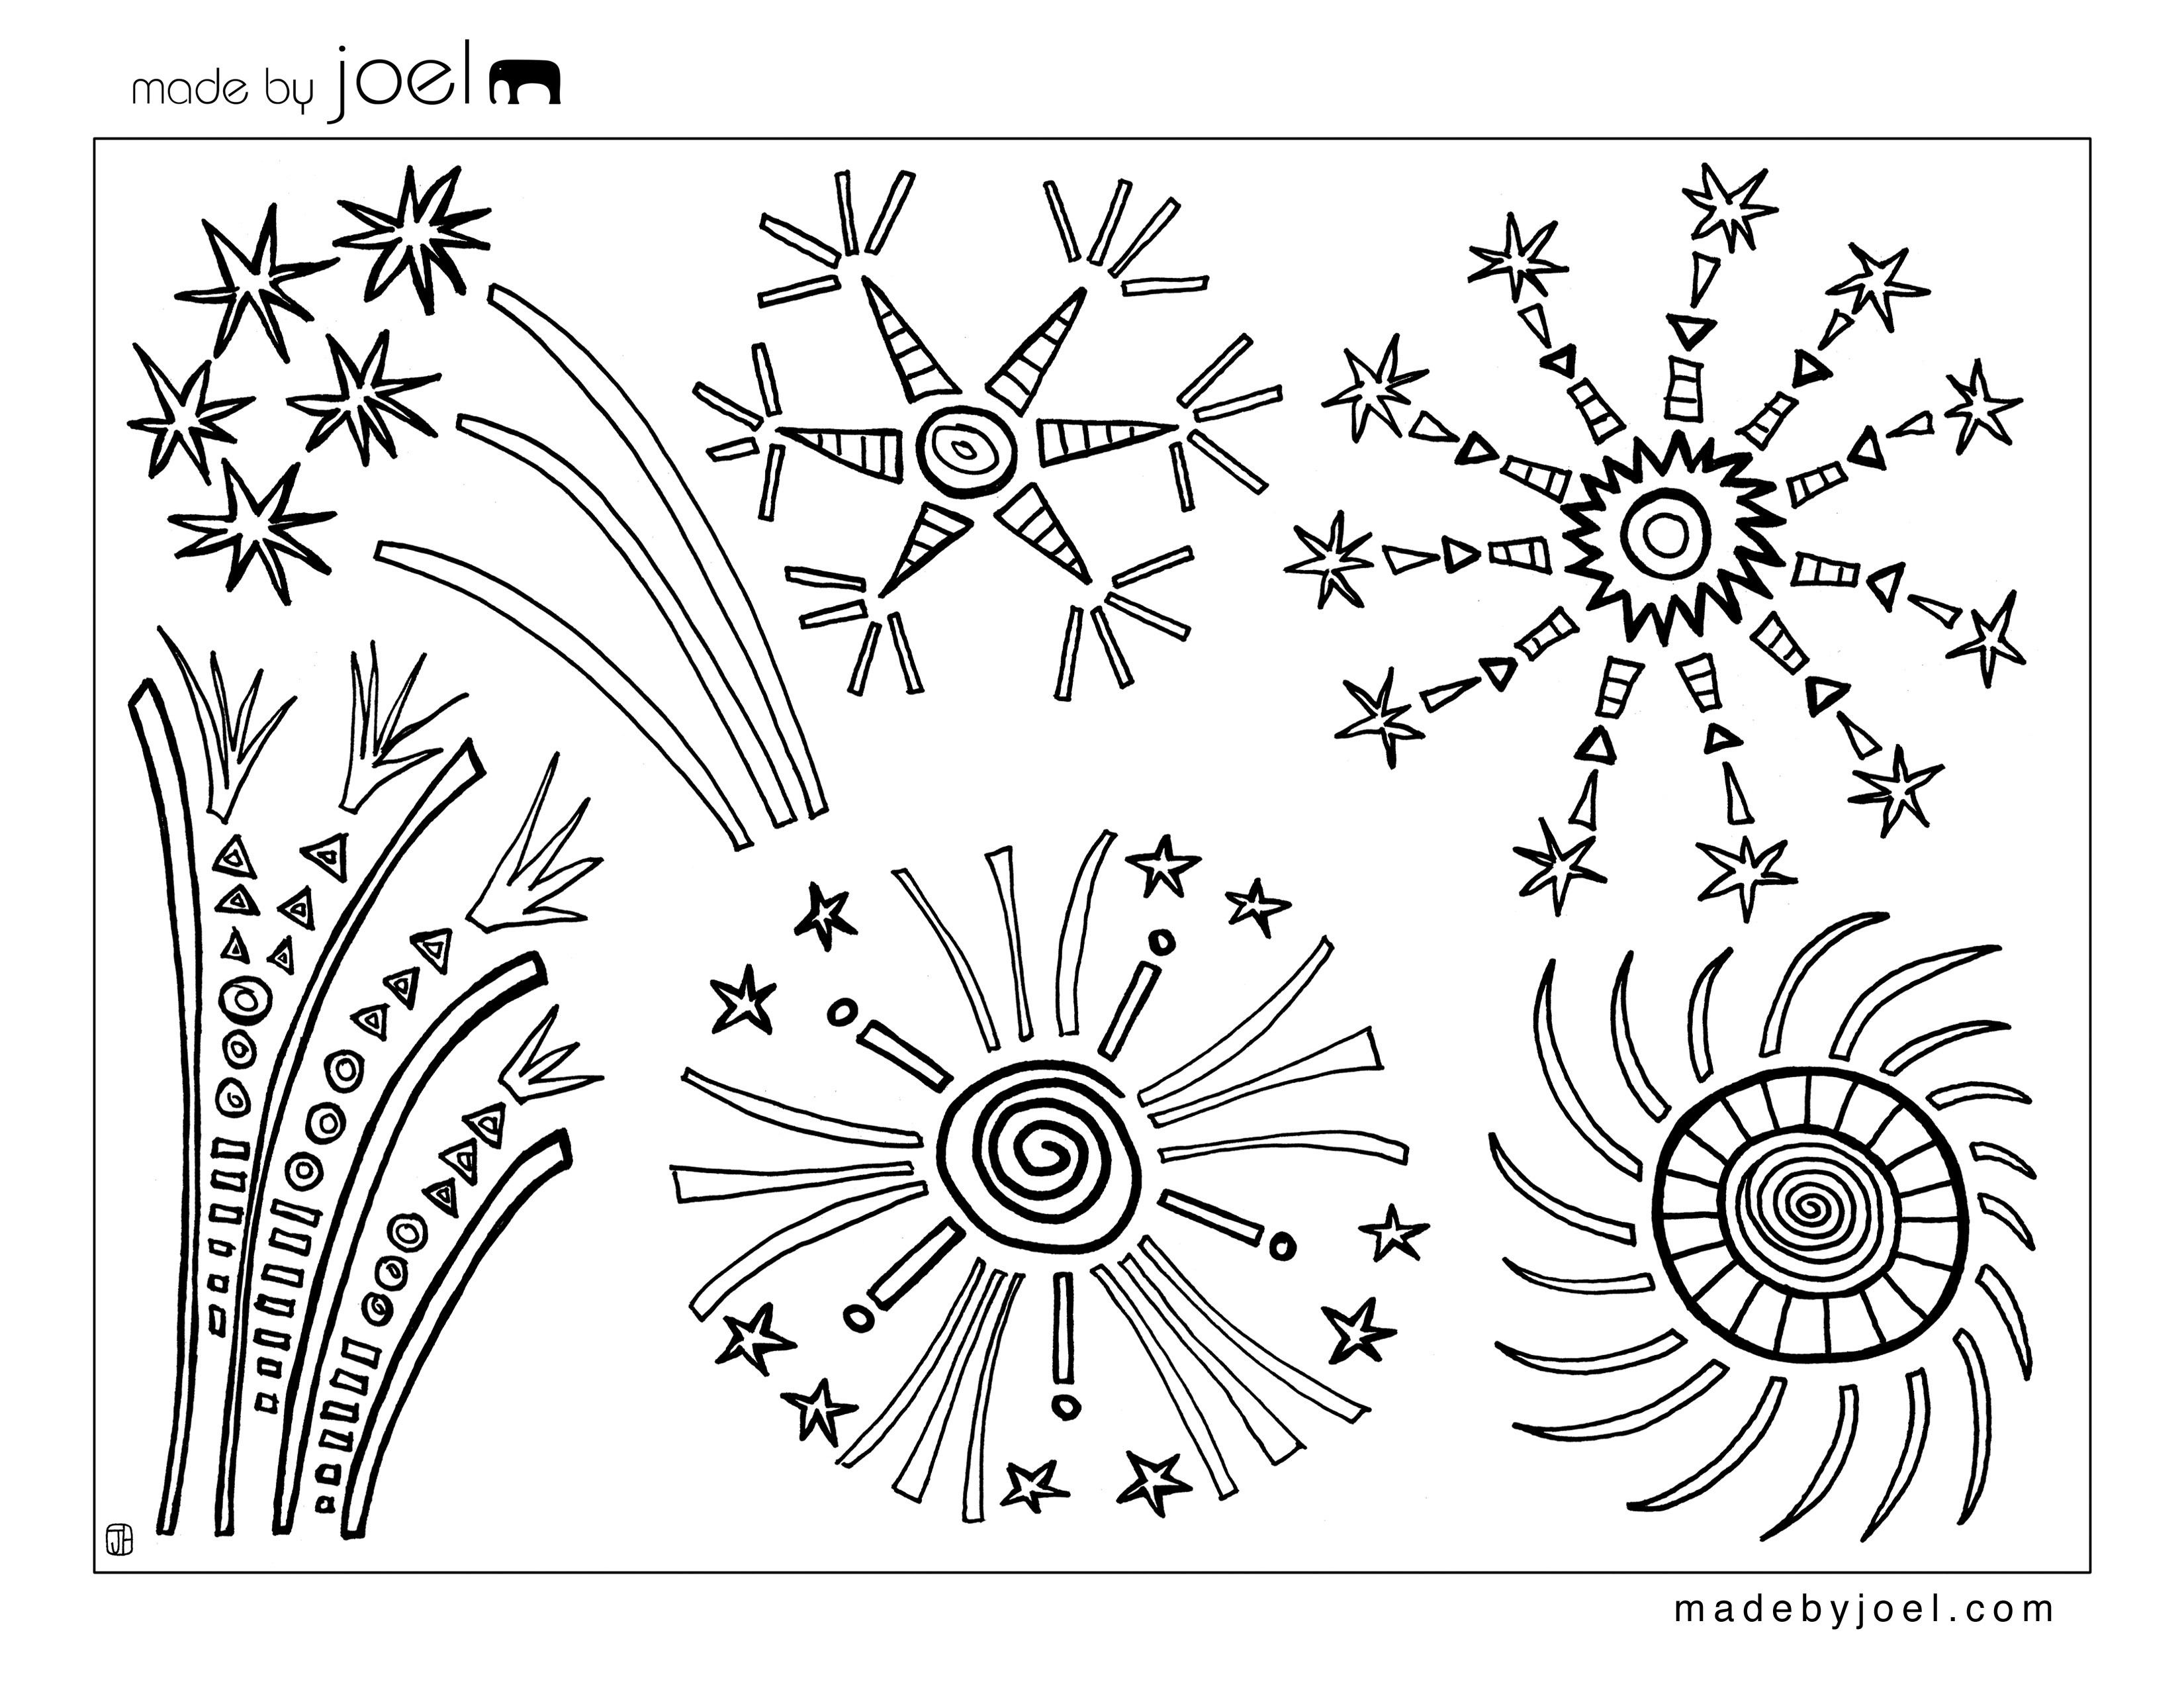 Madejoel » 4Th Of July Fireworks Coloring Sheet - Free Printable 4Th Of July Coloring Pages